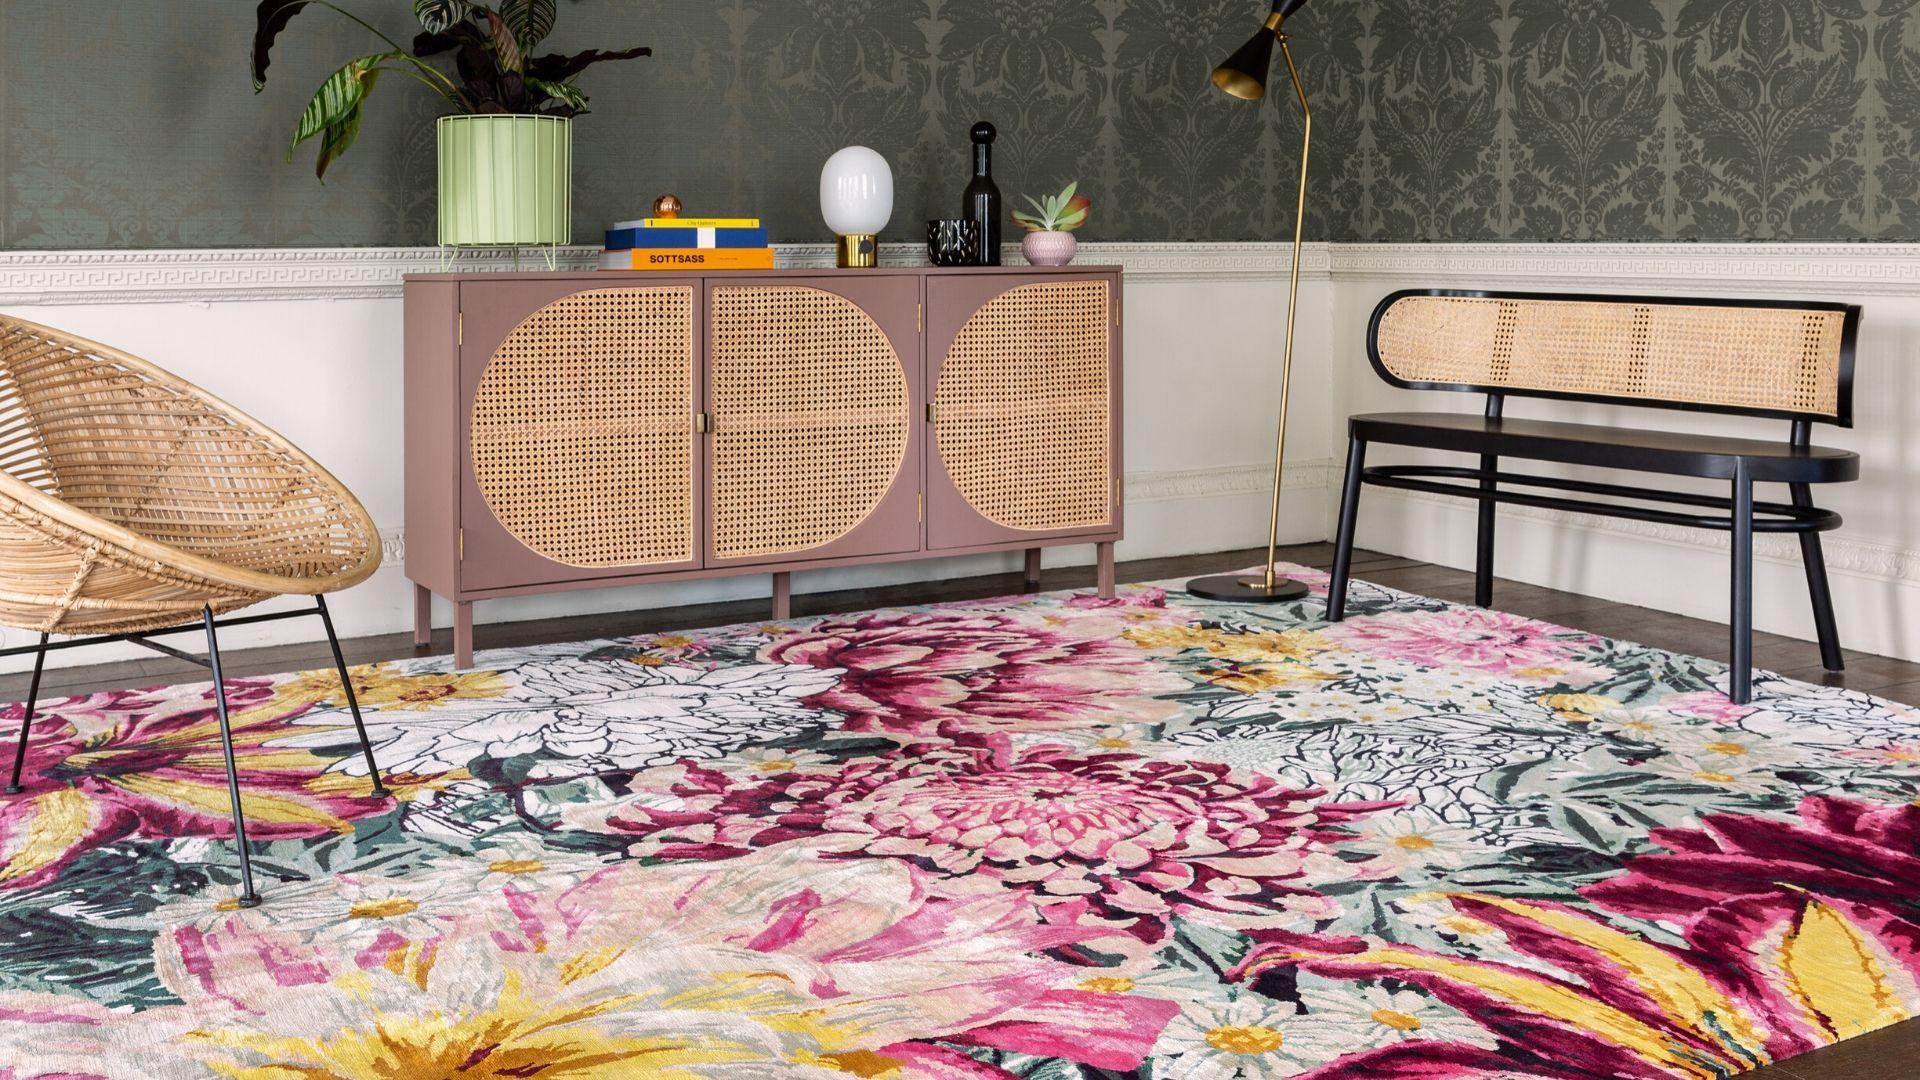 The Rug Company x Mary Katrantzou: A Collaboration Where Interiors Meets Fashion